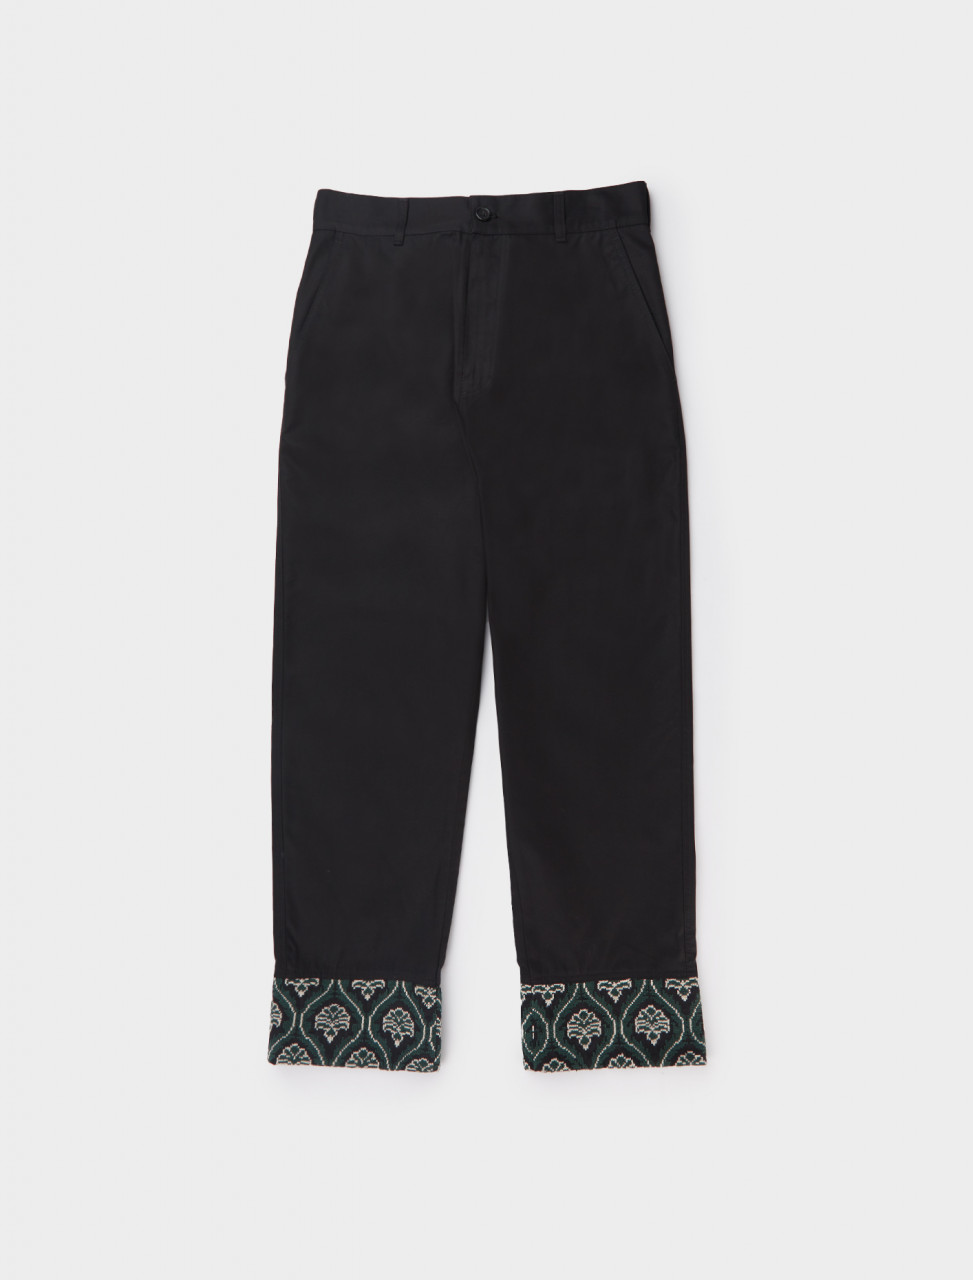 Adish Sawsanas Trouser in Black and Green Embroidered Detail